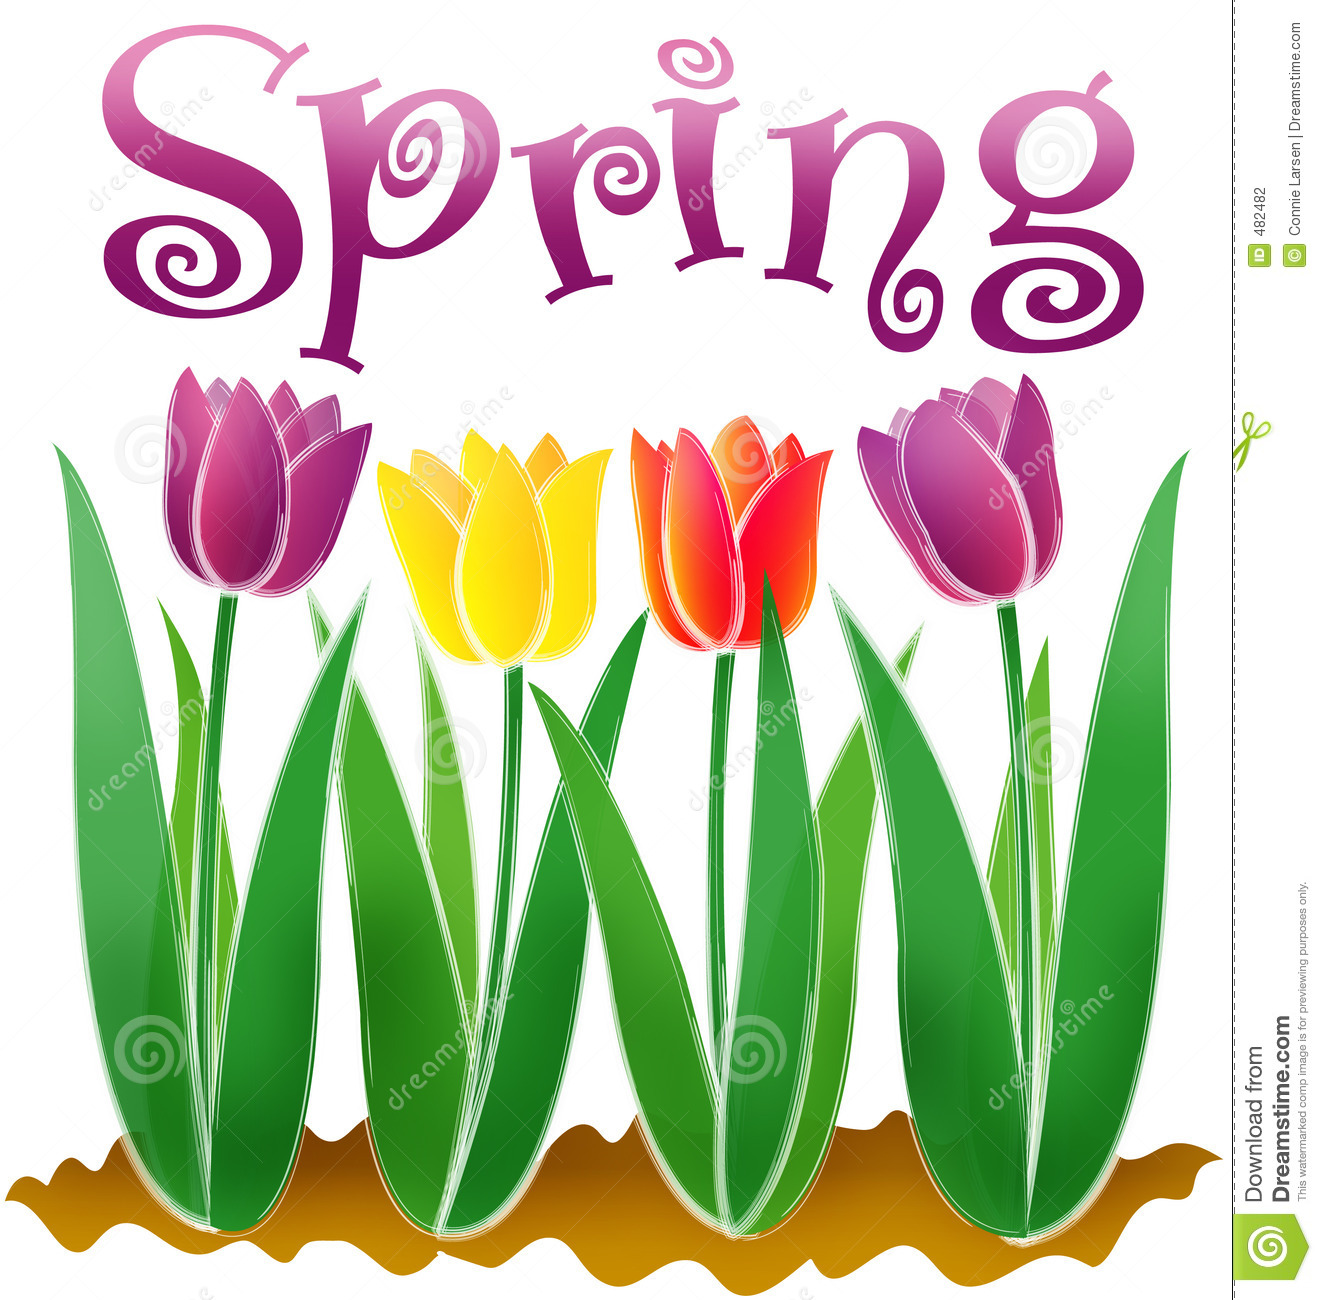 Free clip art of spring pictures-Free clip art of spring pictures-12